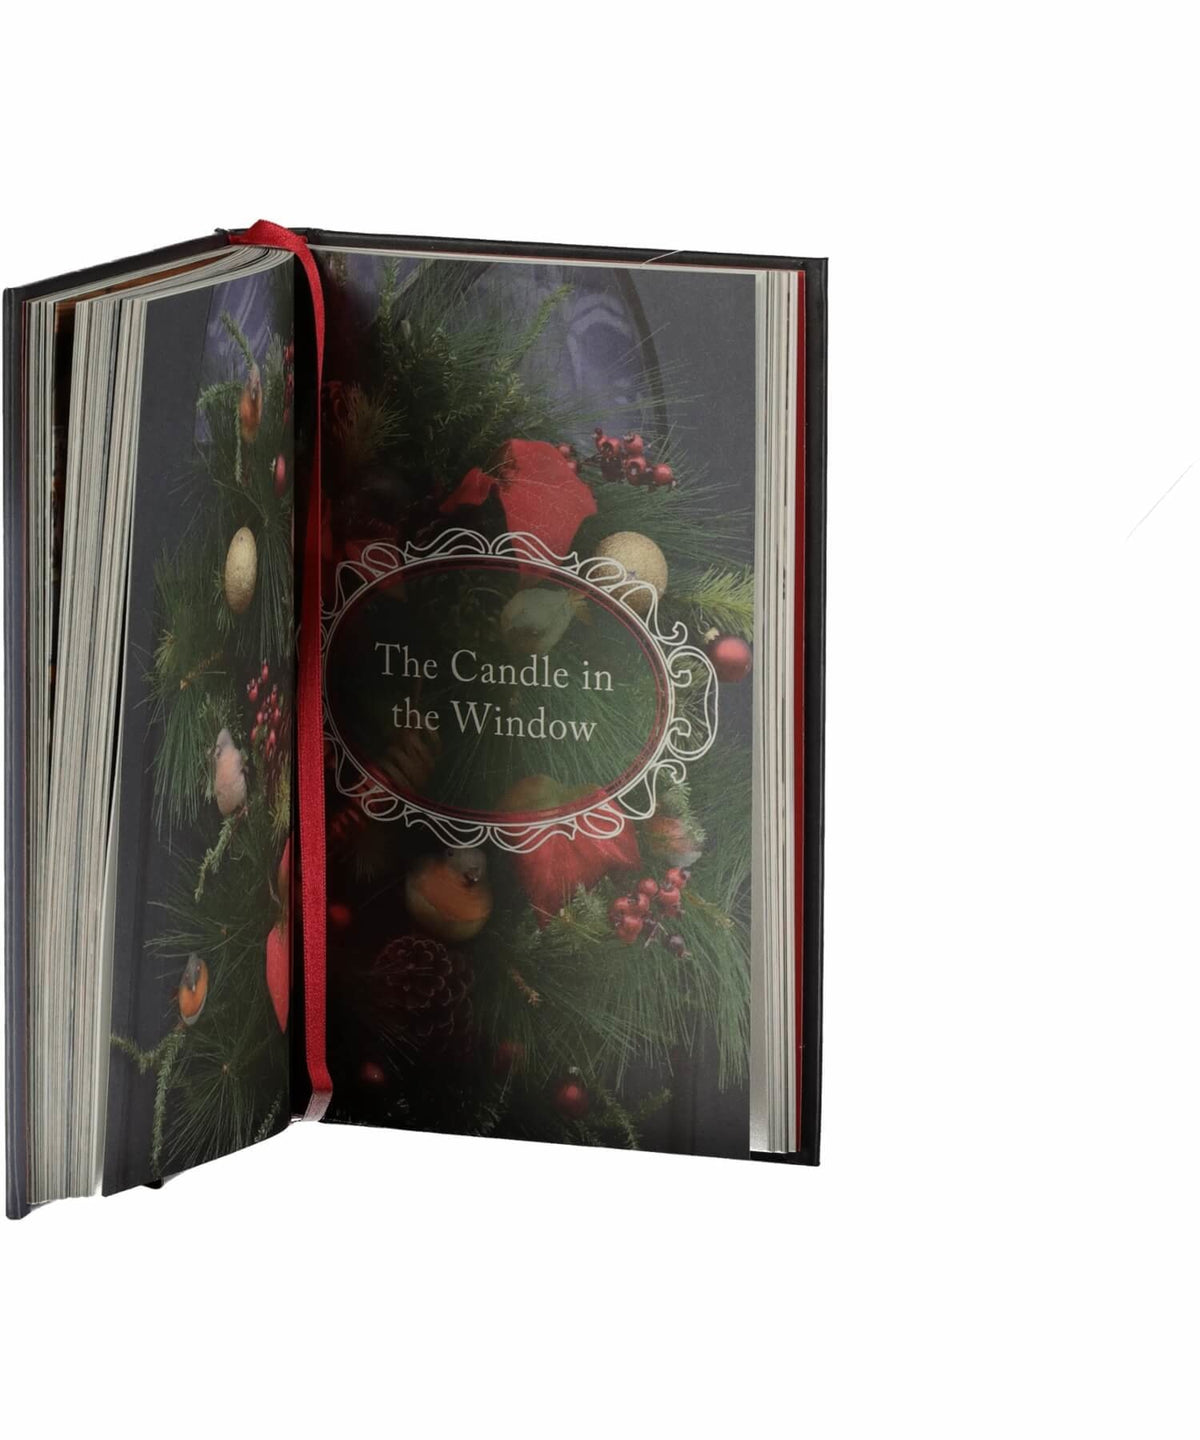 Home For Christmas - [The O'Brien Press] - Books & Stationery - Irish Gifts